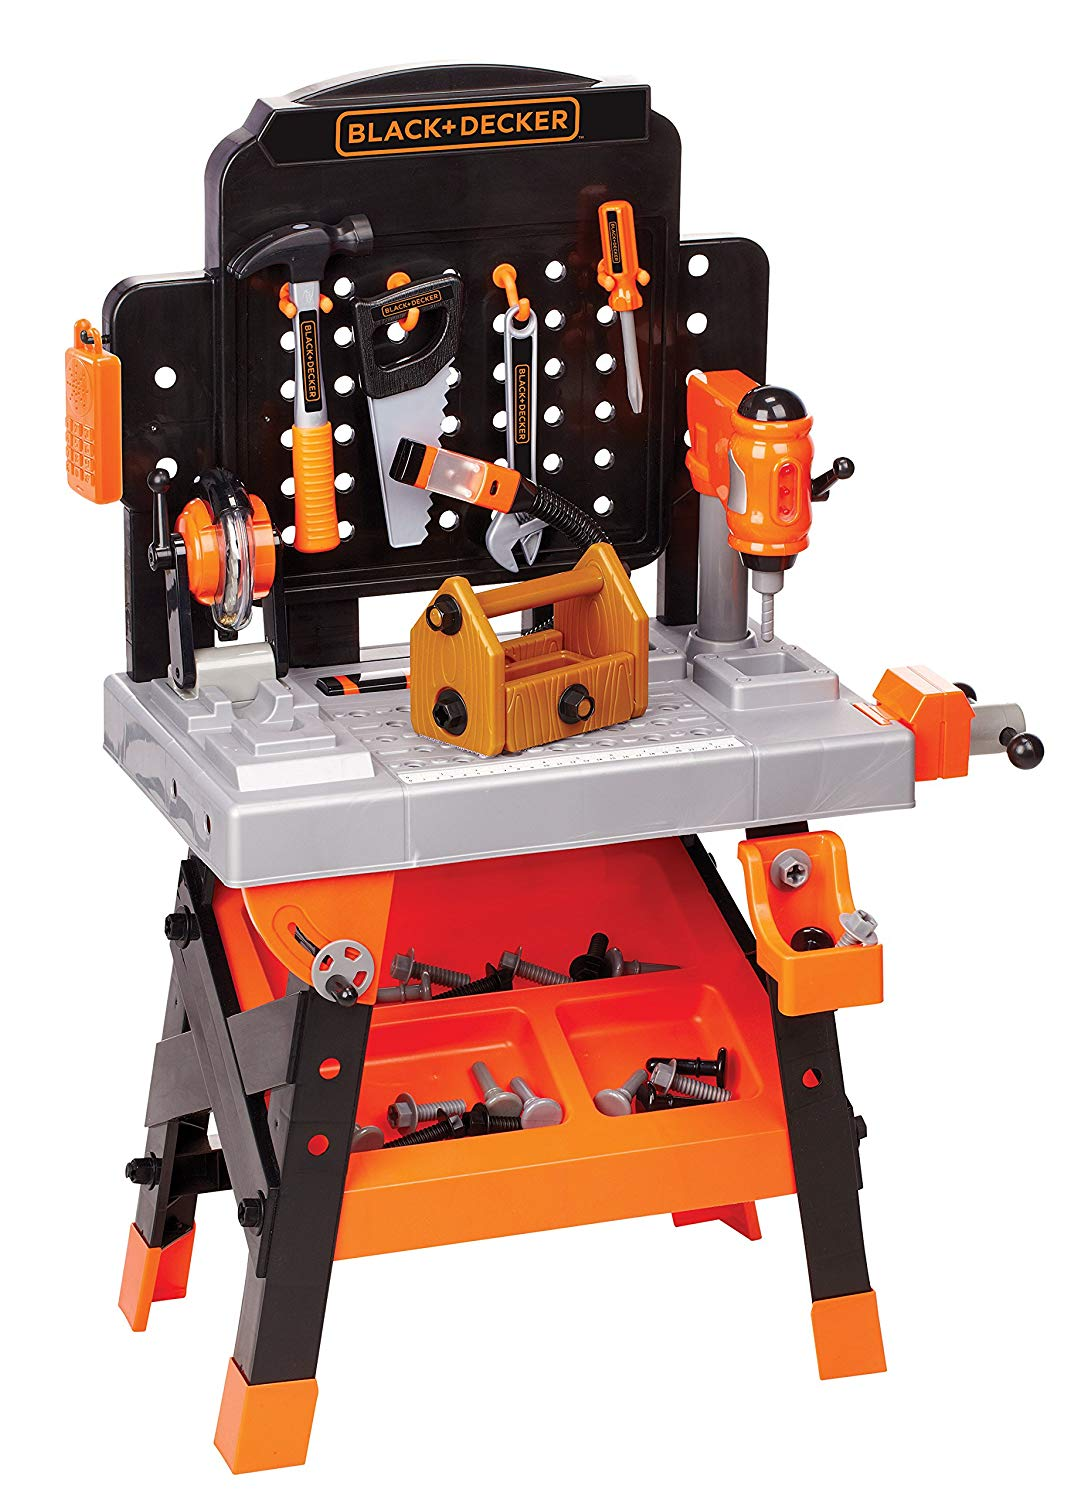 Black + Decker Power Tool Workshop